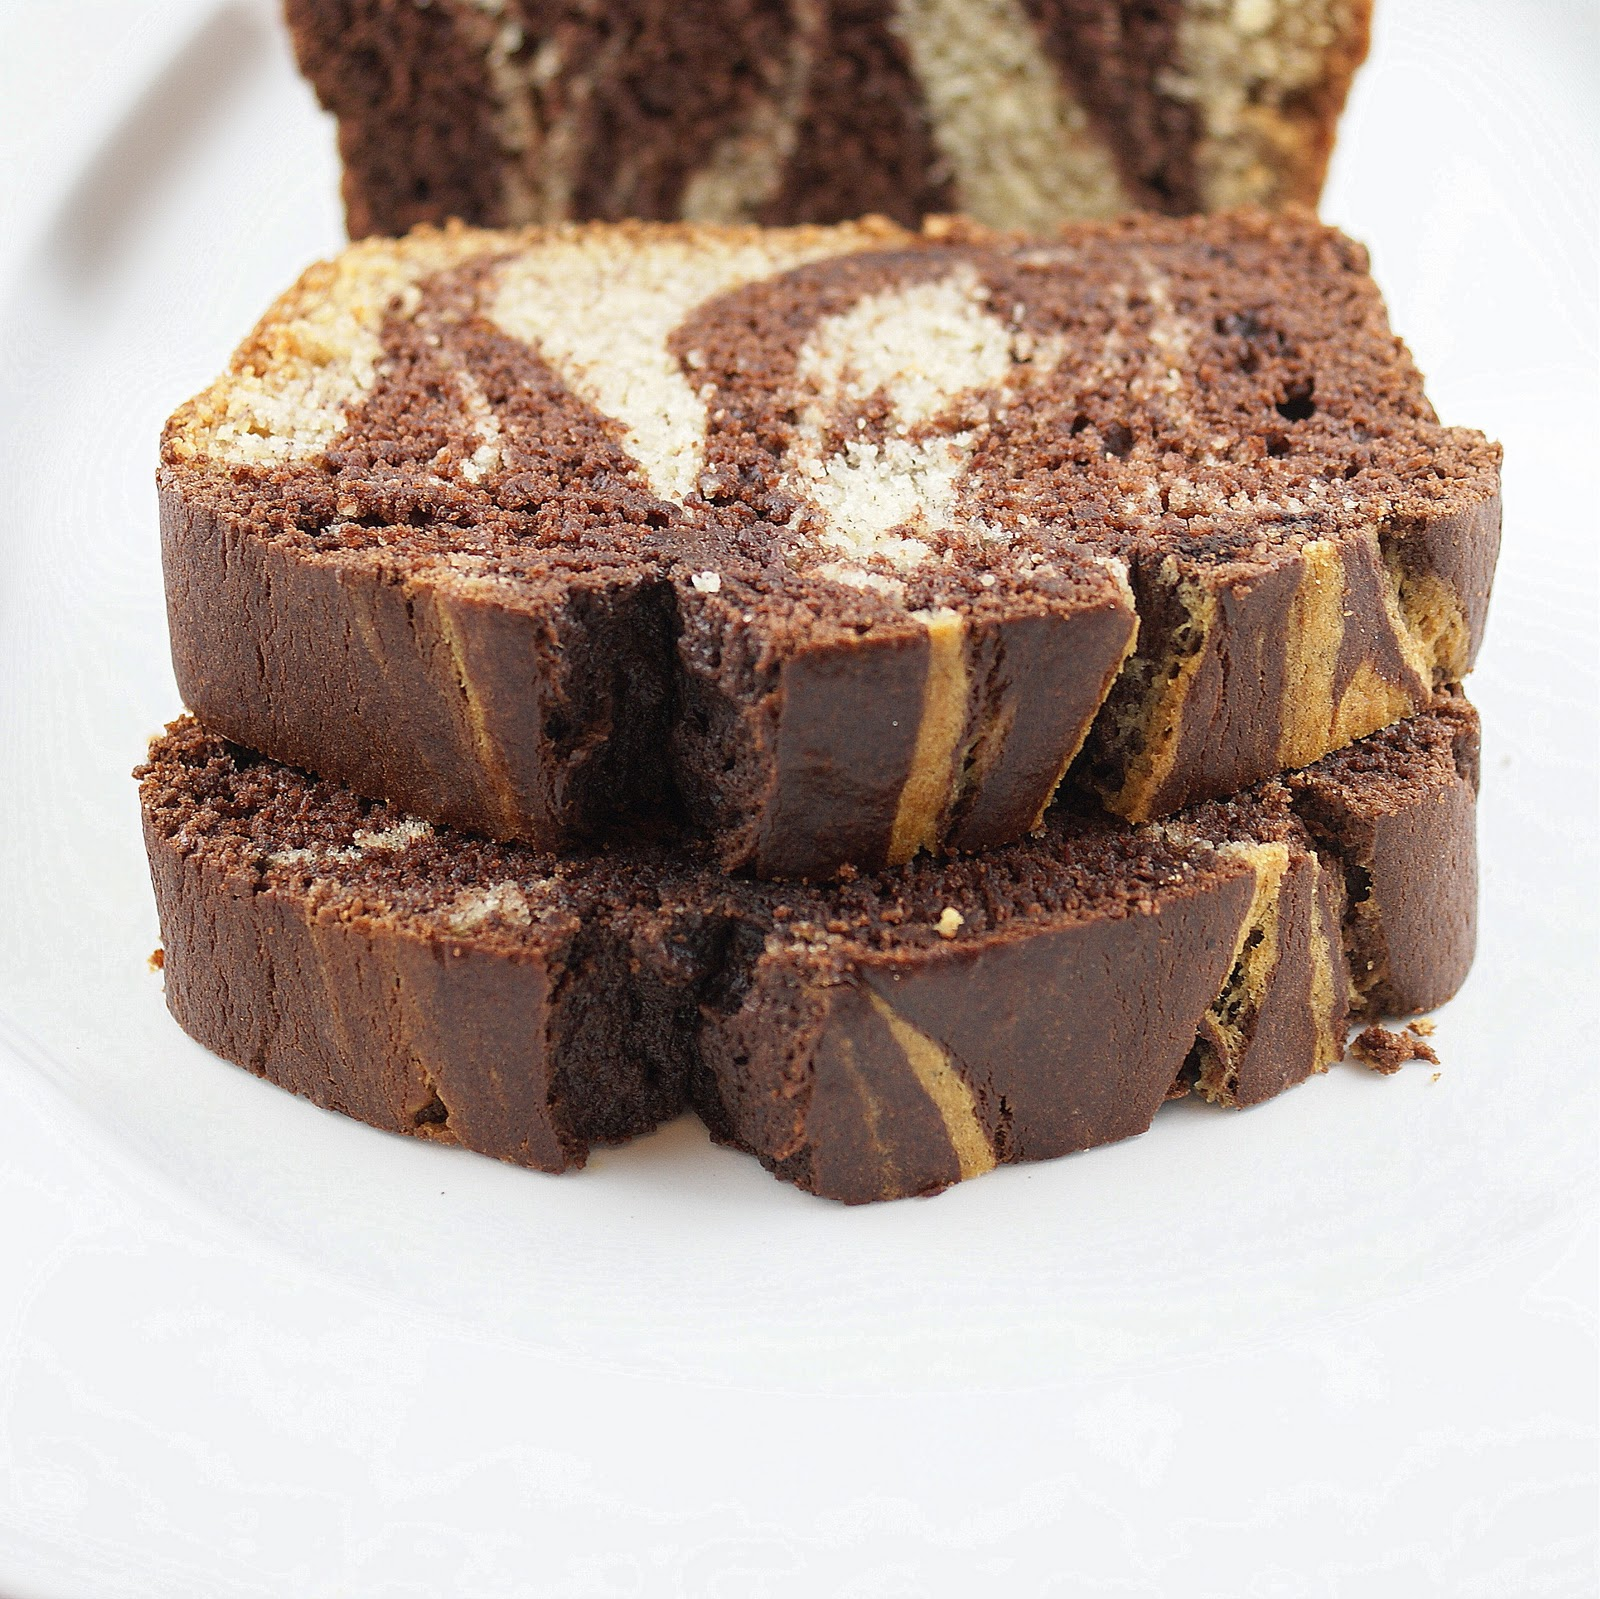 Directions and Ingredients for Chocolate Banana Marble Bread